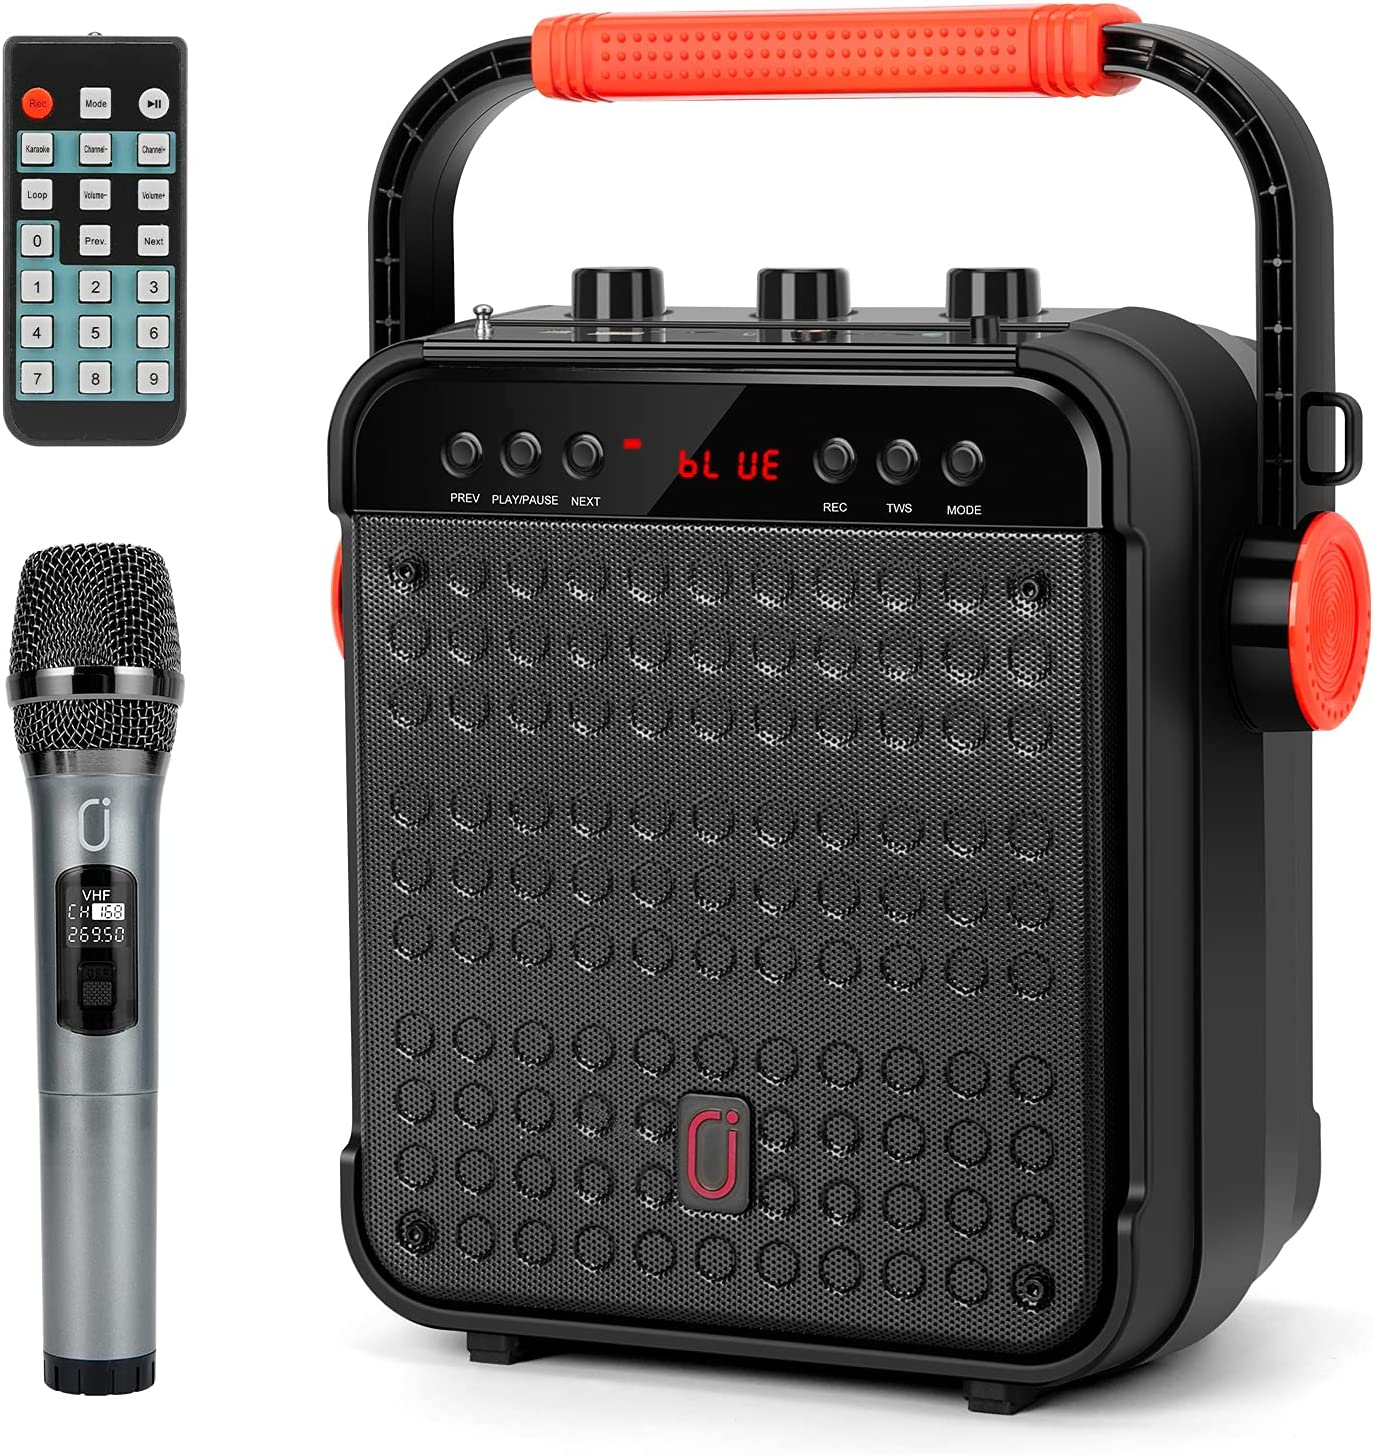 JYX Portable 25% OFF Karaoke Machine Wireless Microphone with National products Bluetooth